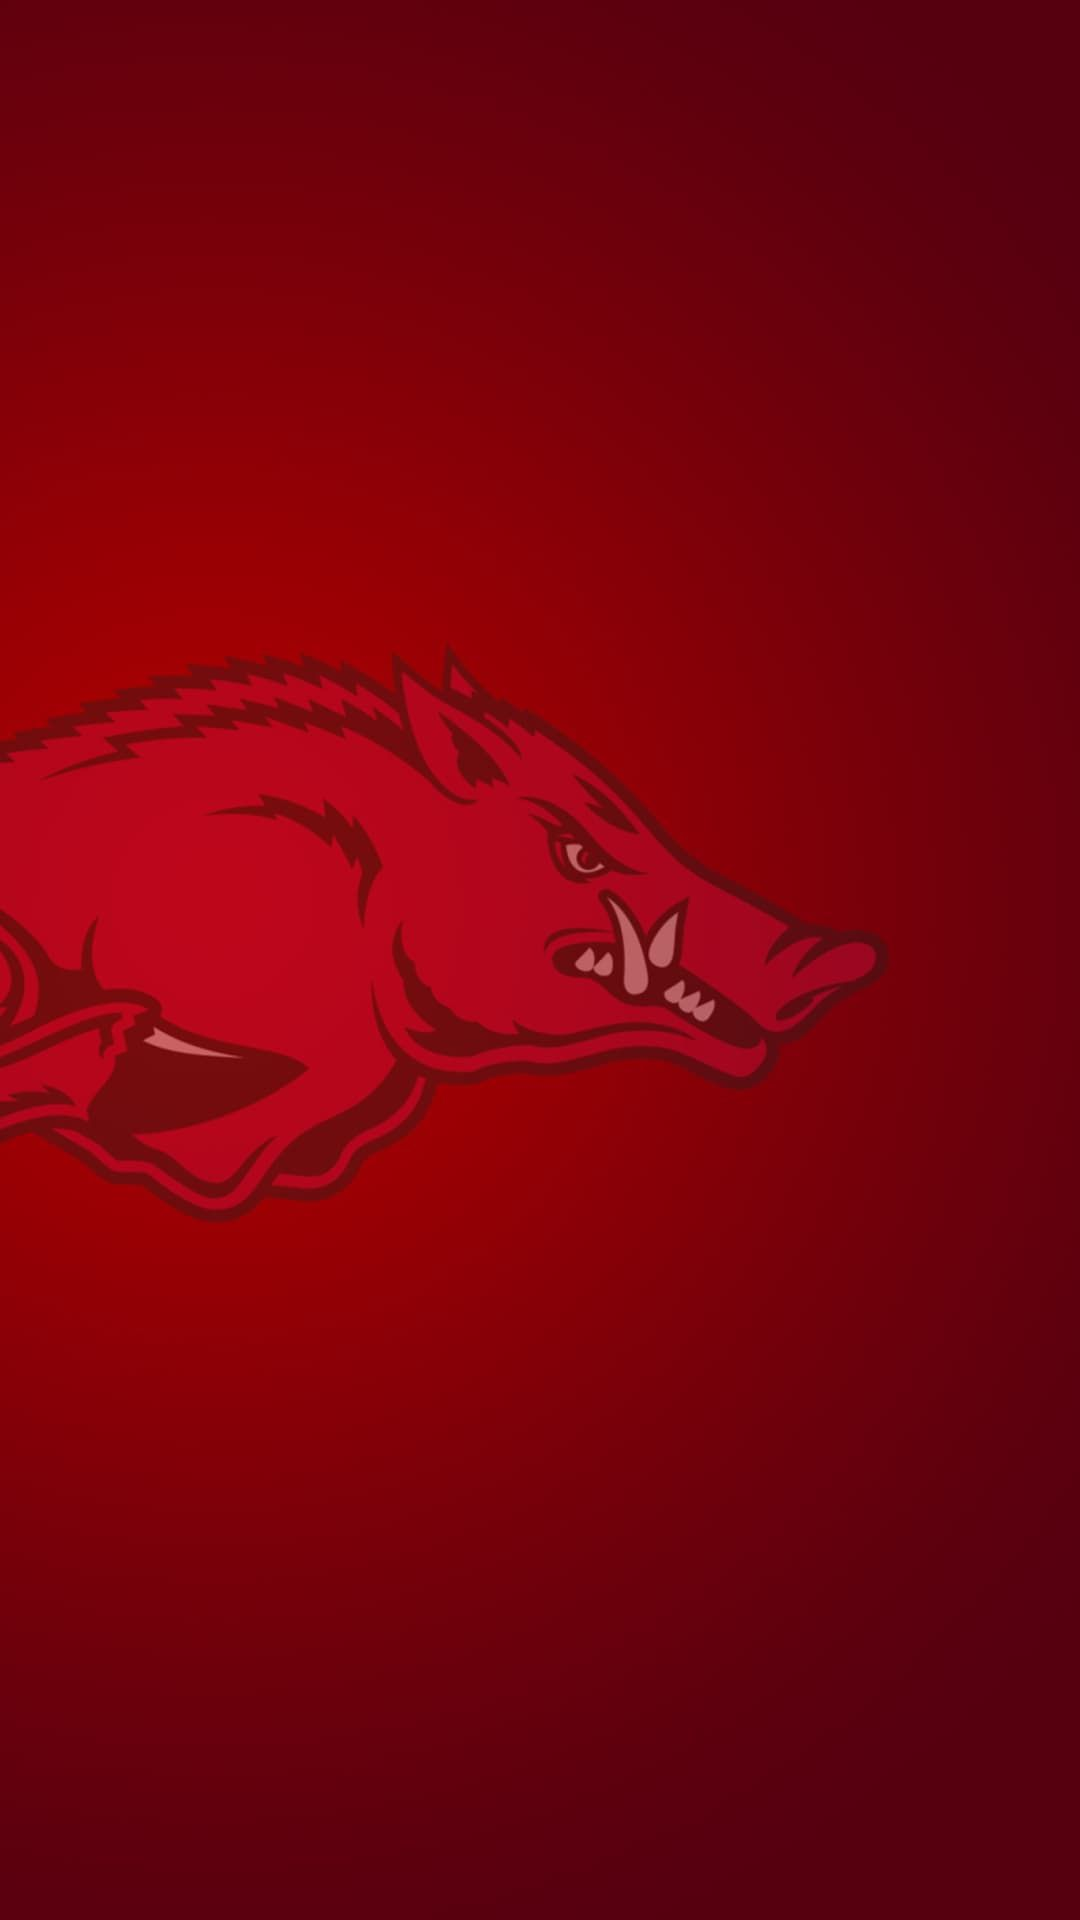 Http Mobw Org 16468 Arkansas Razorbacks Wallpaper Android Html Arkansas Razorbacks Wallpaper And Arkansas Razorbacks Football Razorback Painting Razorbacks